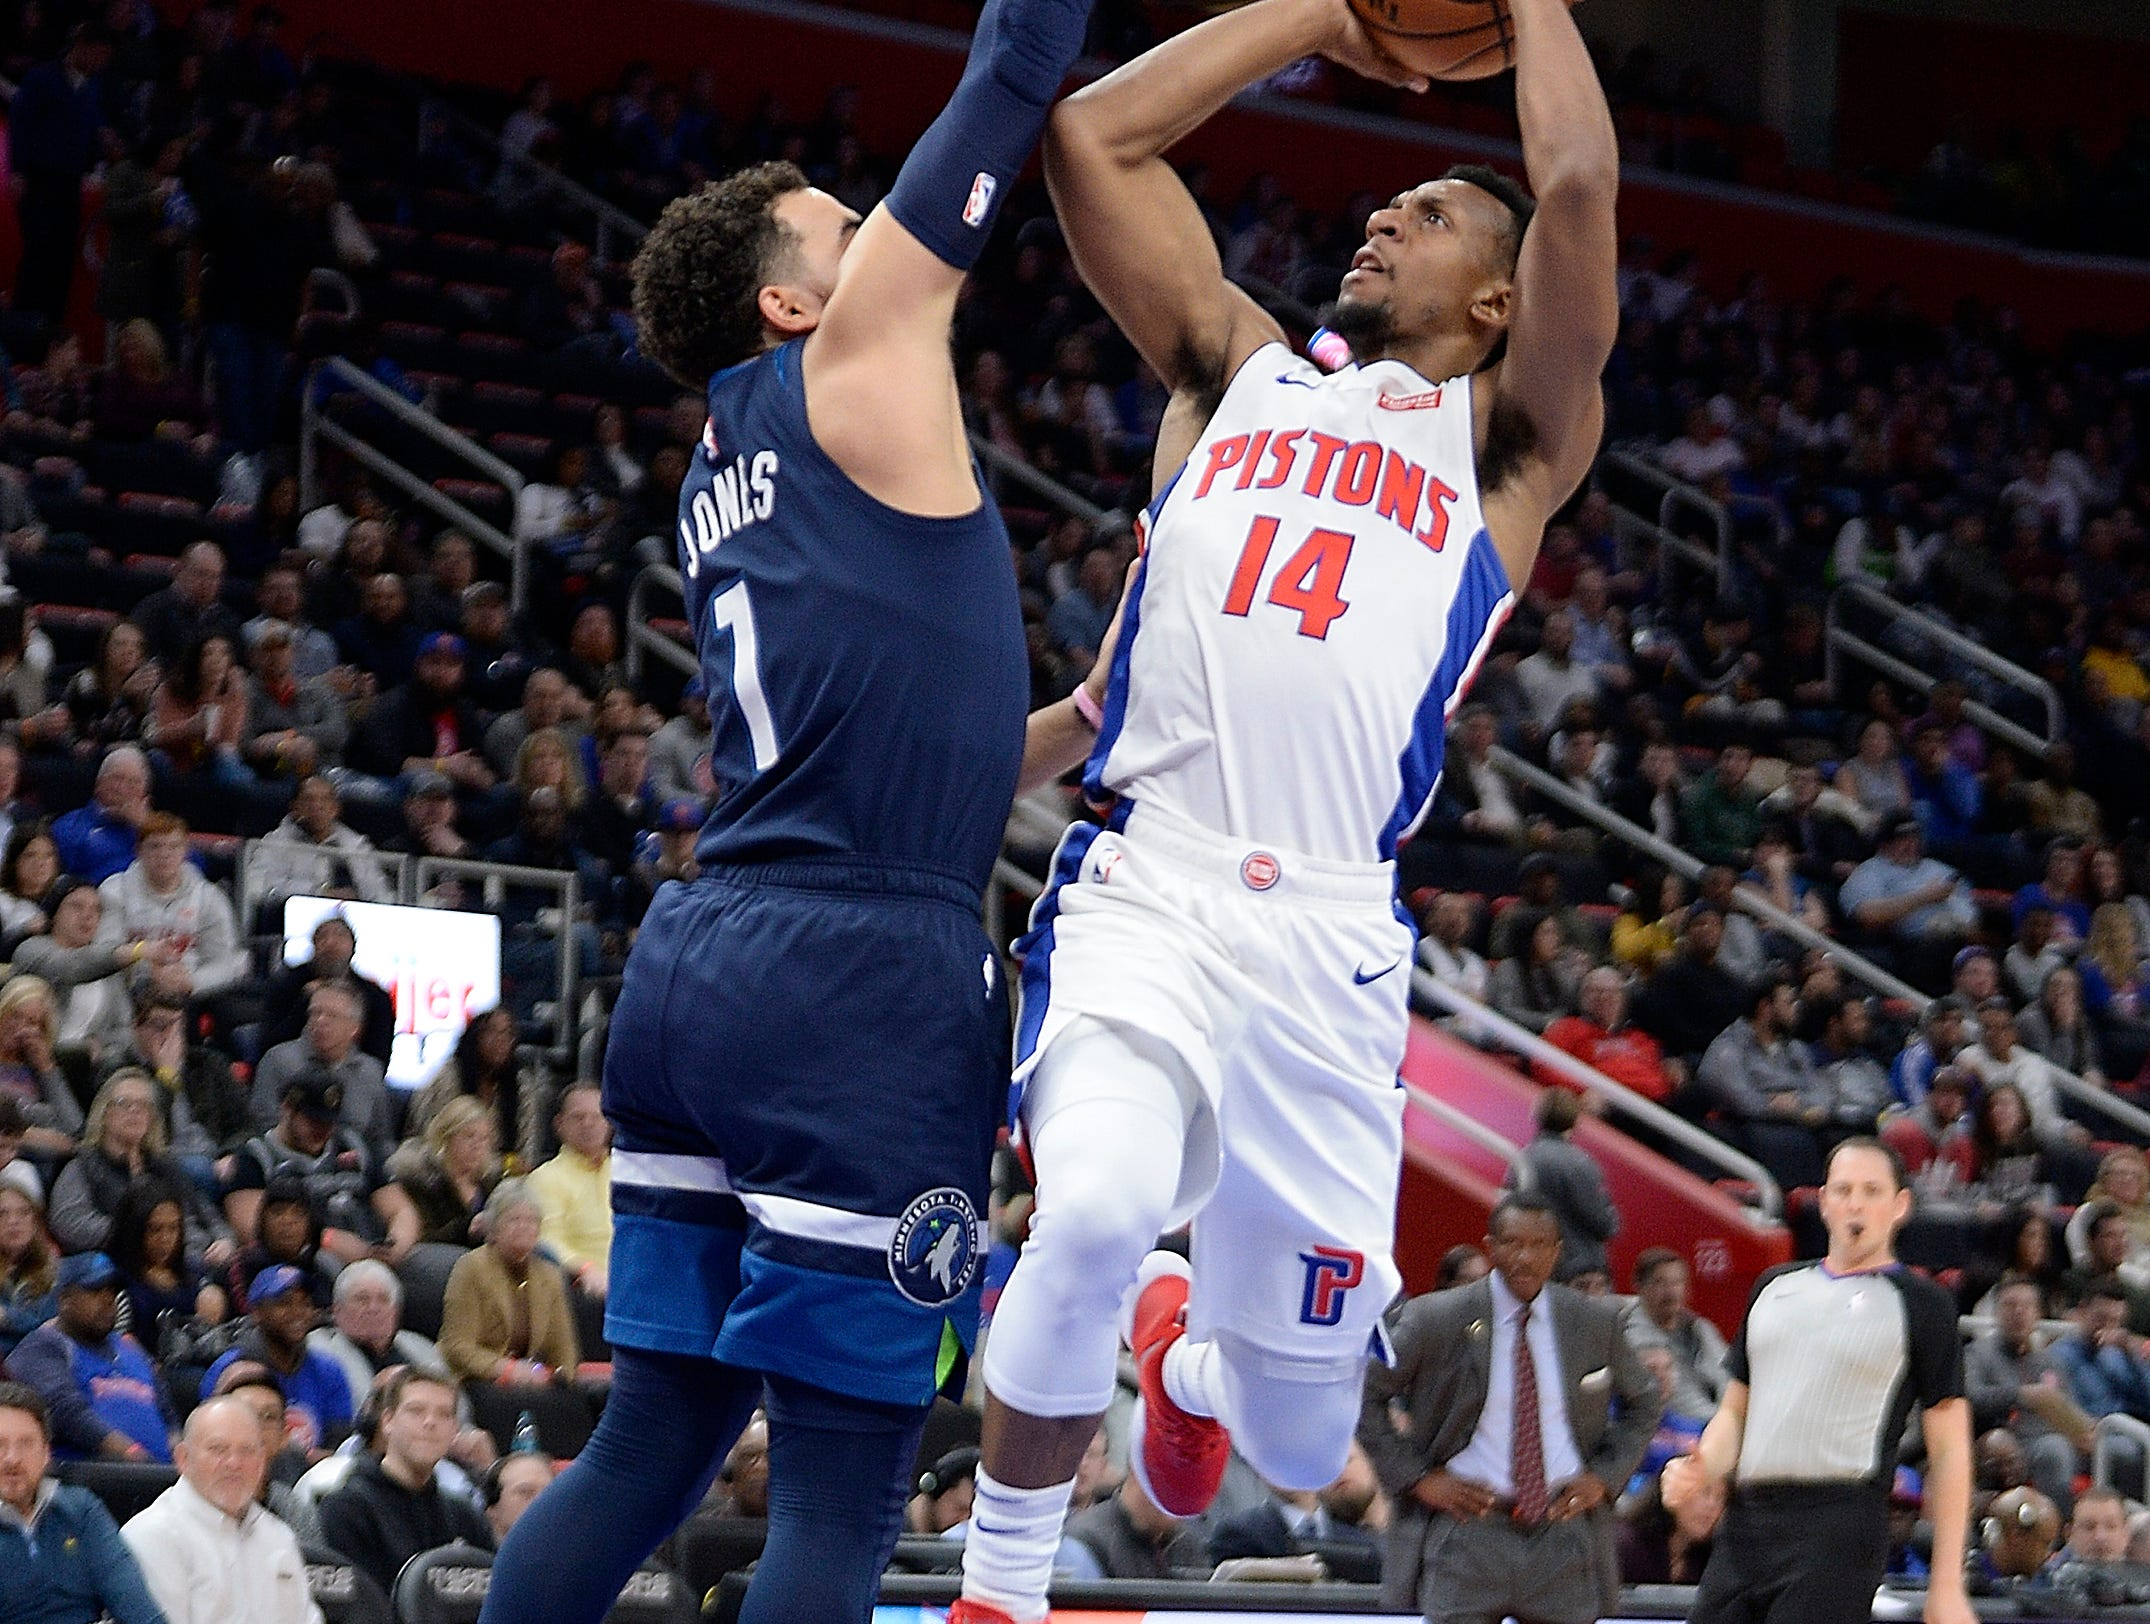 Pistons' Ish Smith shoots over Timberwolves' Tyus Jones in the secopnd quarter. Smith was fouled on the play at Little Caesars Arena.